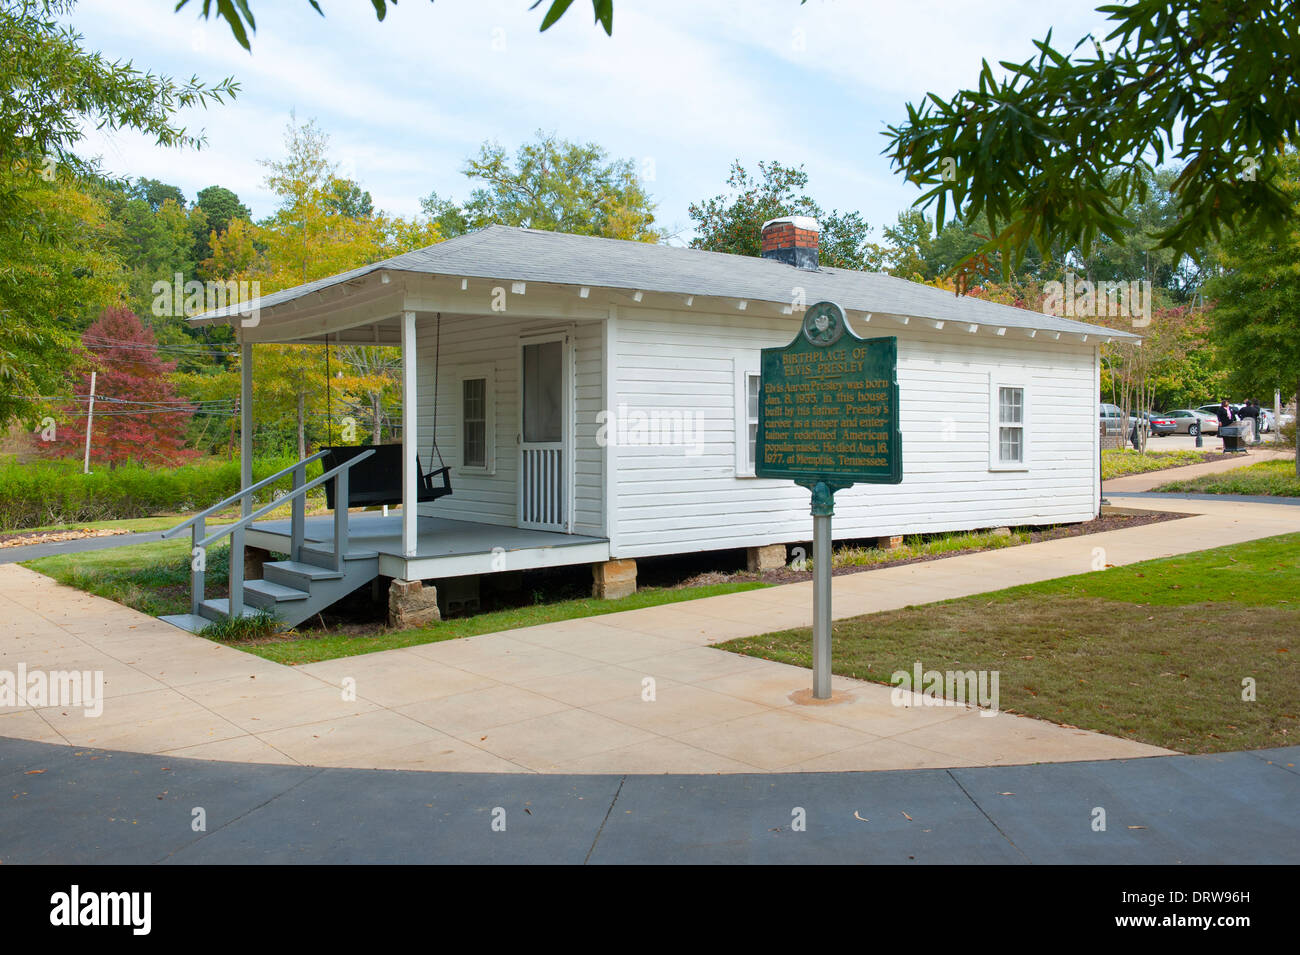 USA Mississippi MS Miss Tupelo Elvis Presley birthplace home birth - exterior of the original childhood home house - Stock Image